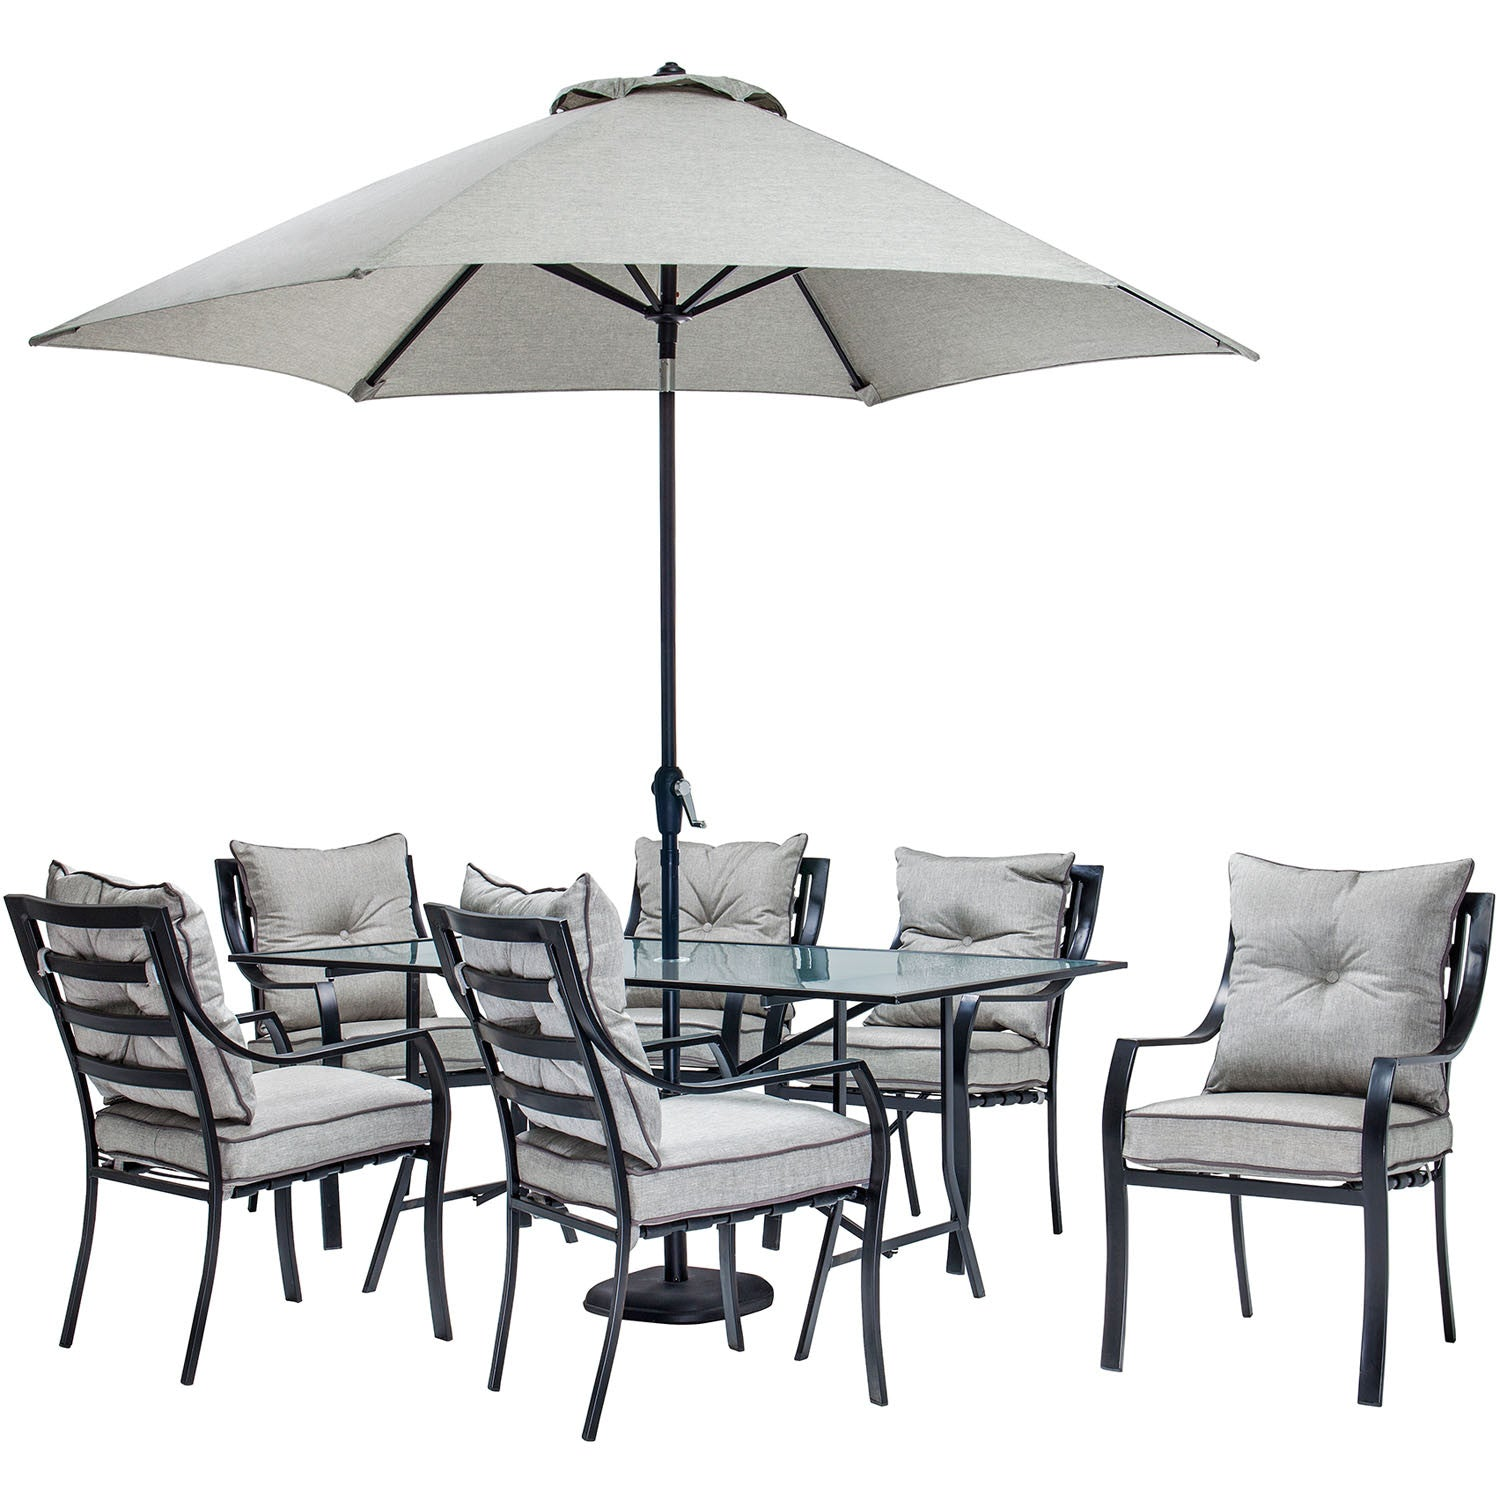 Miraculous Lavallette 7Pc Dining Set Glass Table 6 Cushion Chairs Umbrella Base Lavdn7Pc Su Grey Pdpeps Interior Chair Design Pdpepsorg